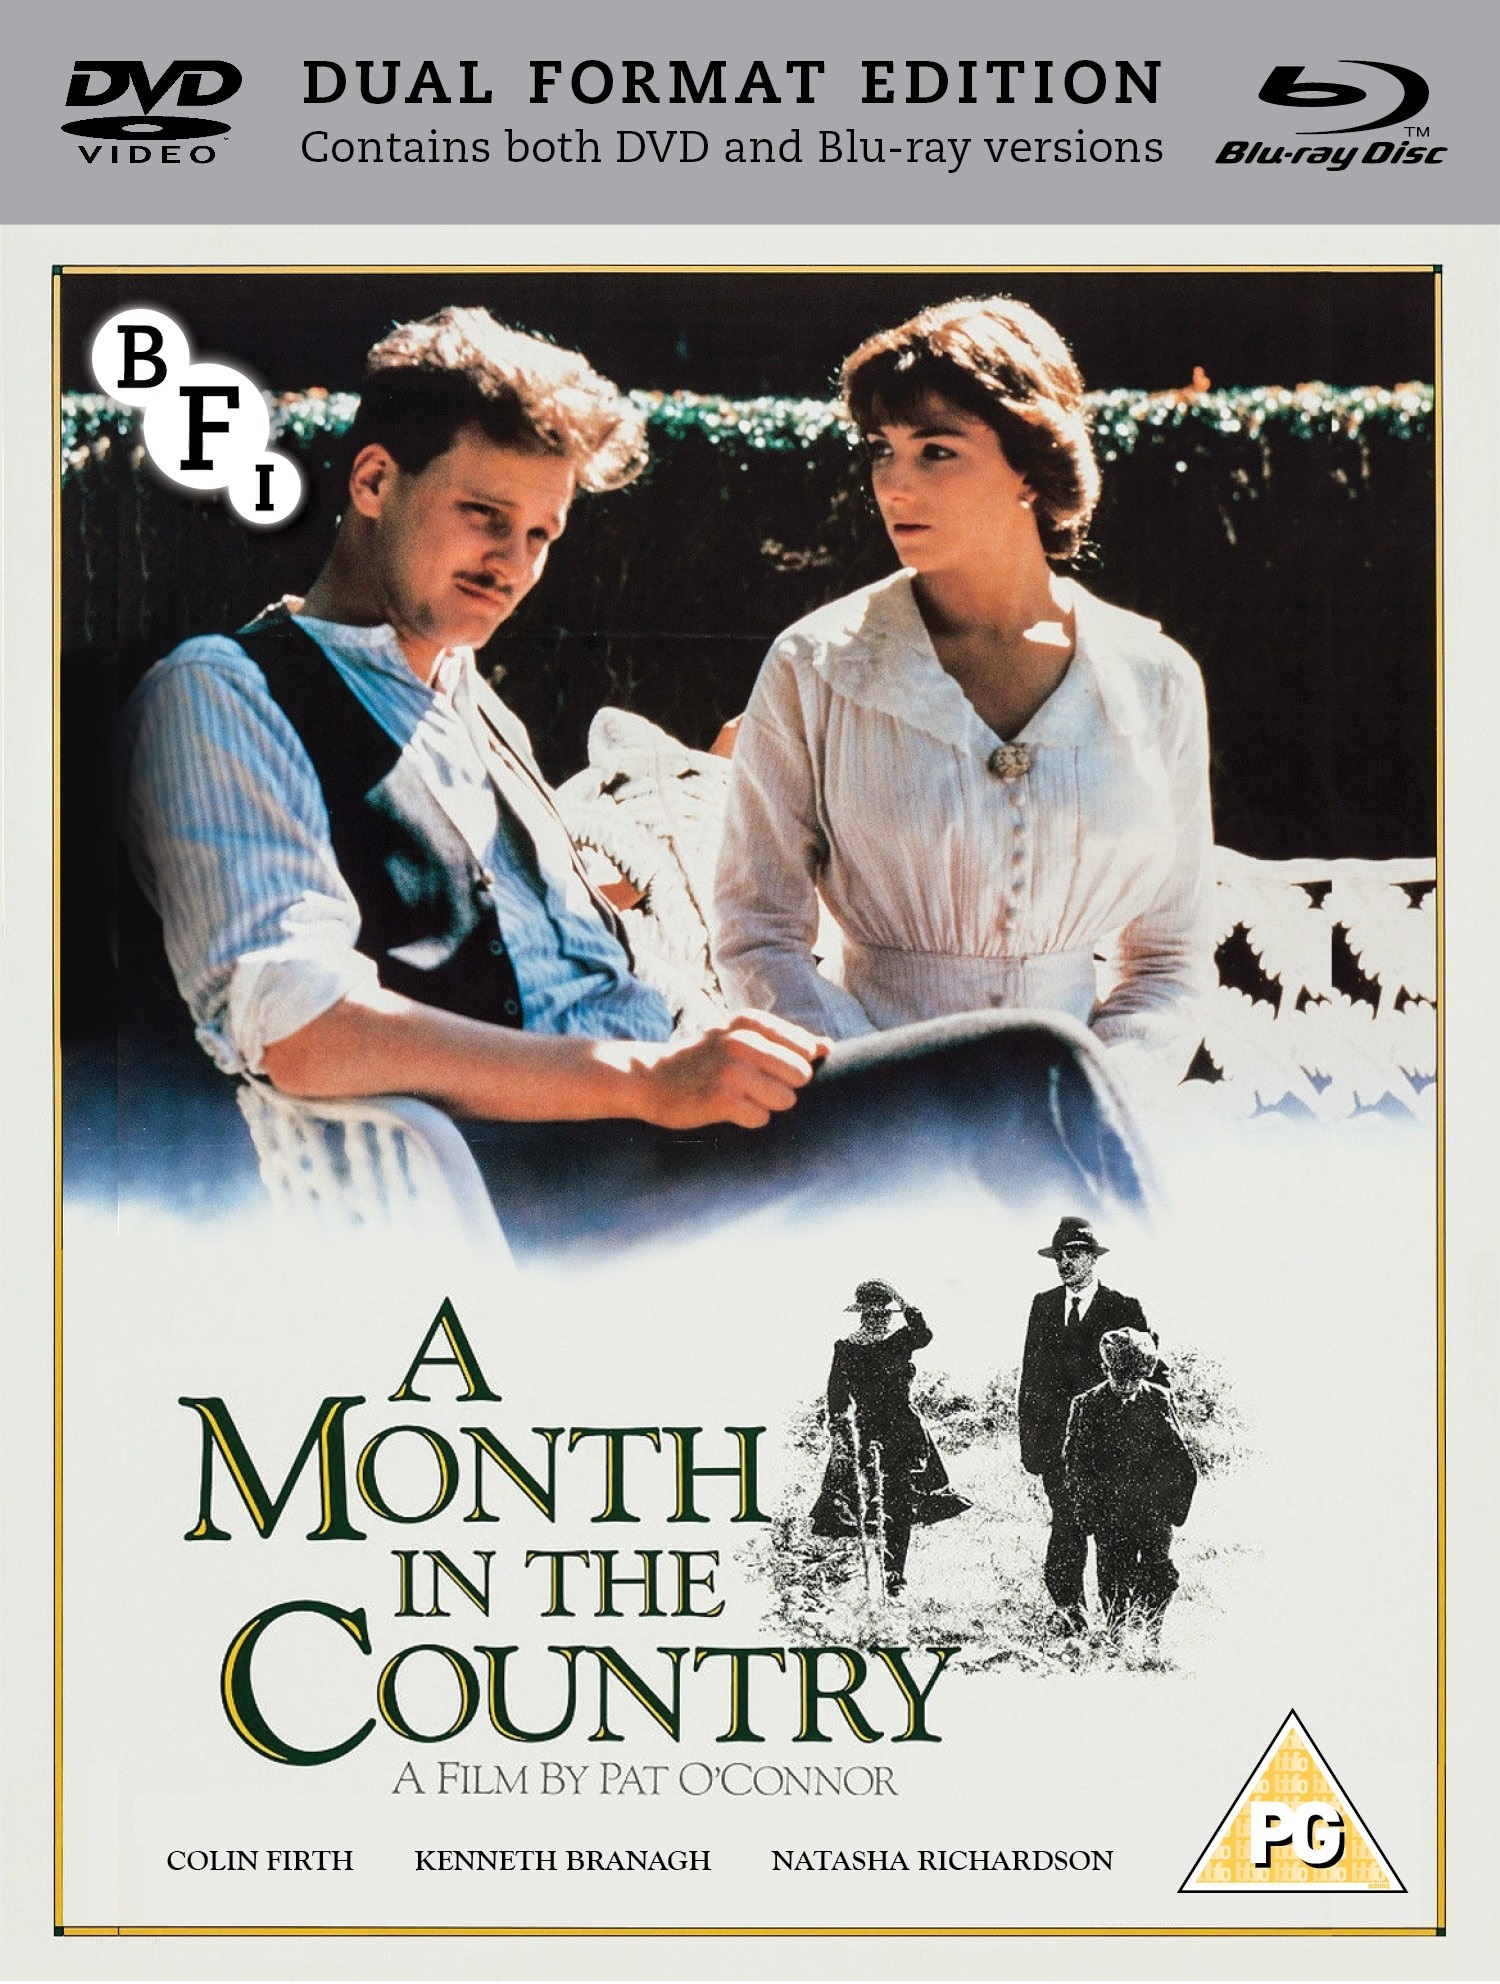 Buy Month in the Country, A (Dual Format Edition)